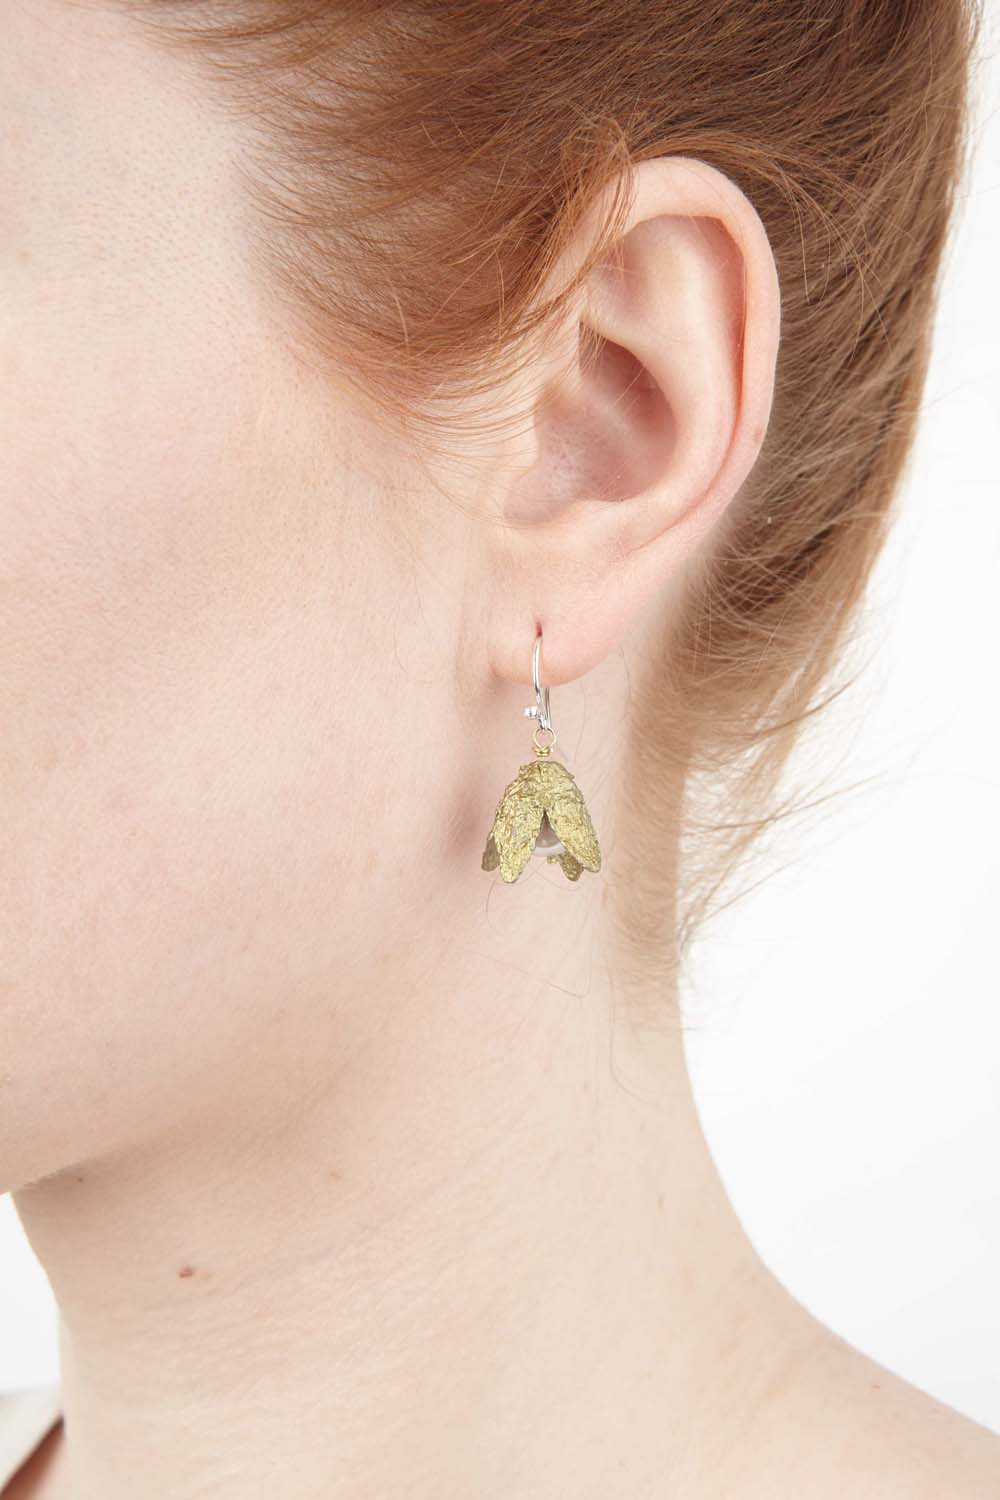 Beech Nut Earring - Single Wire